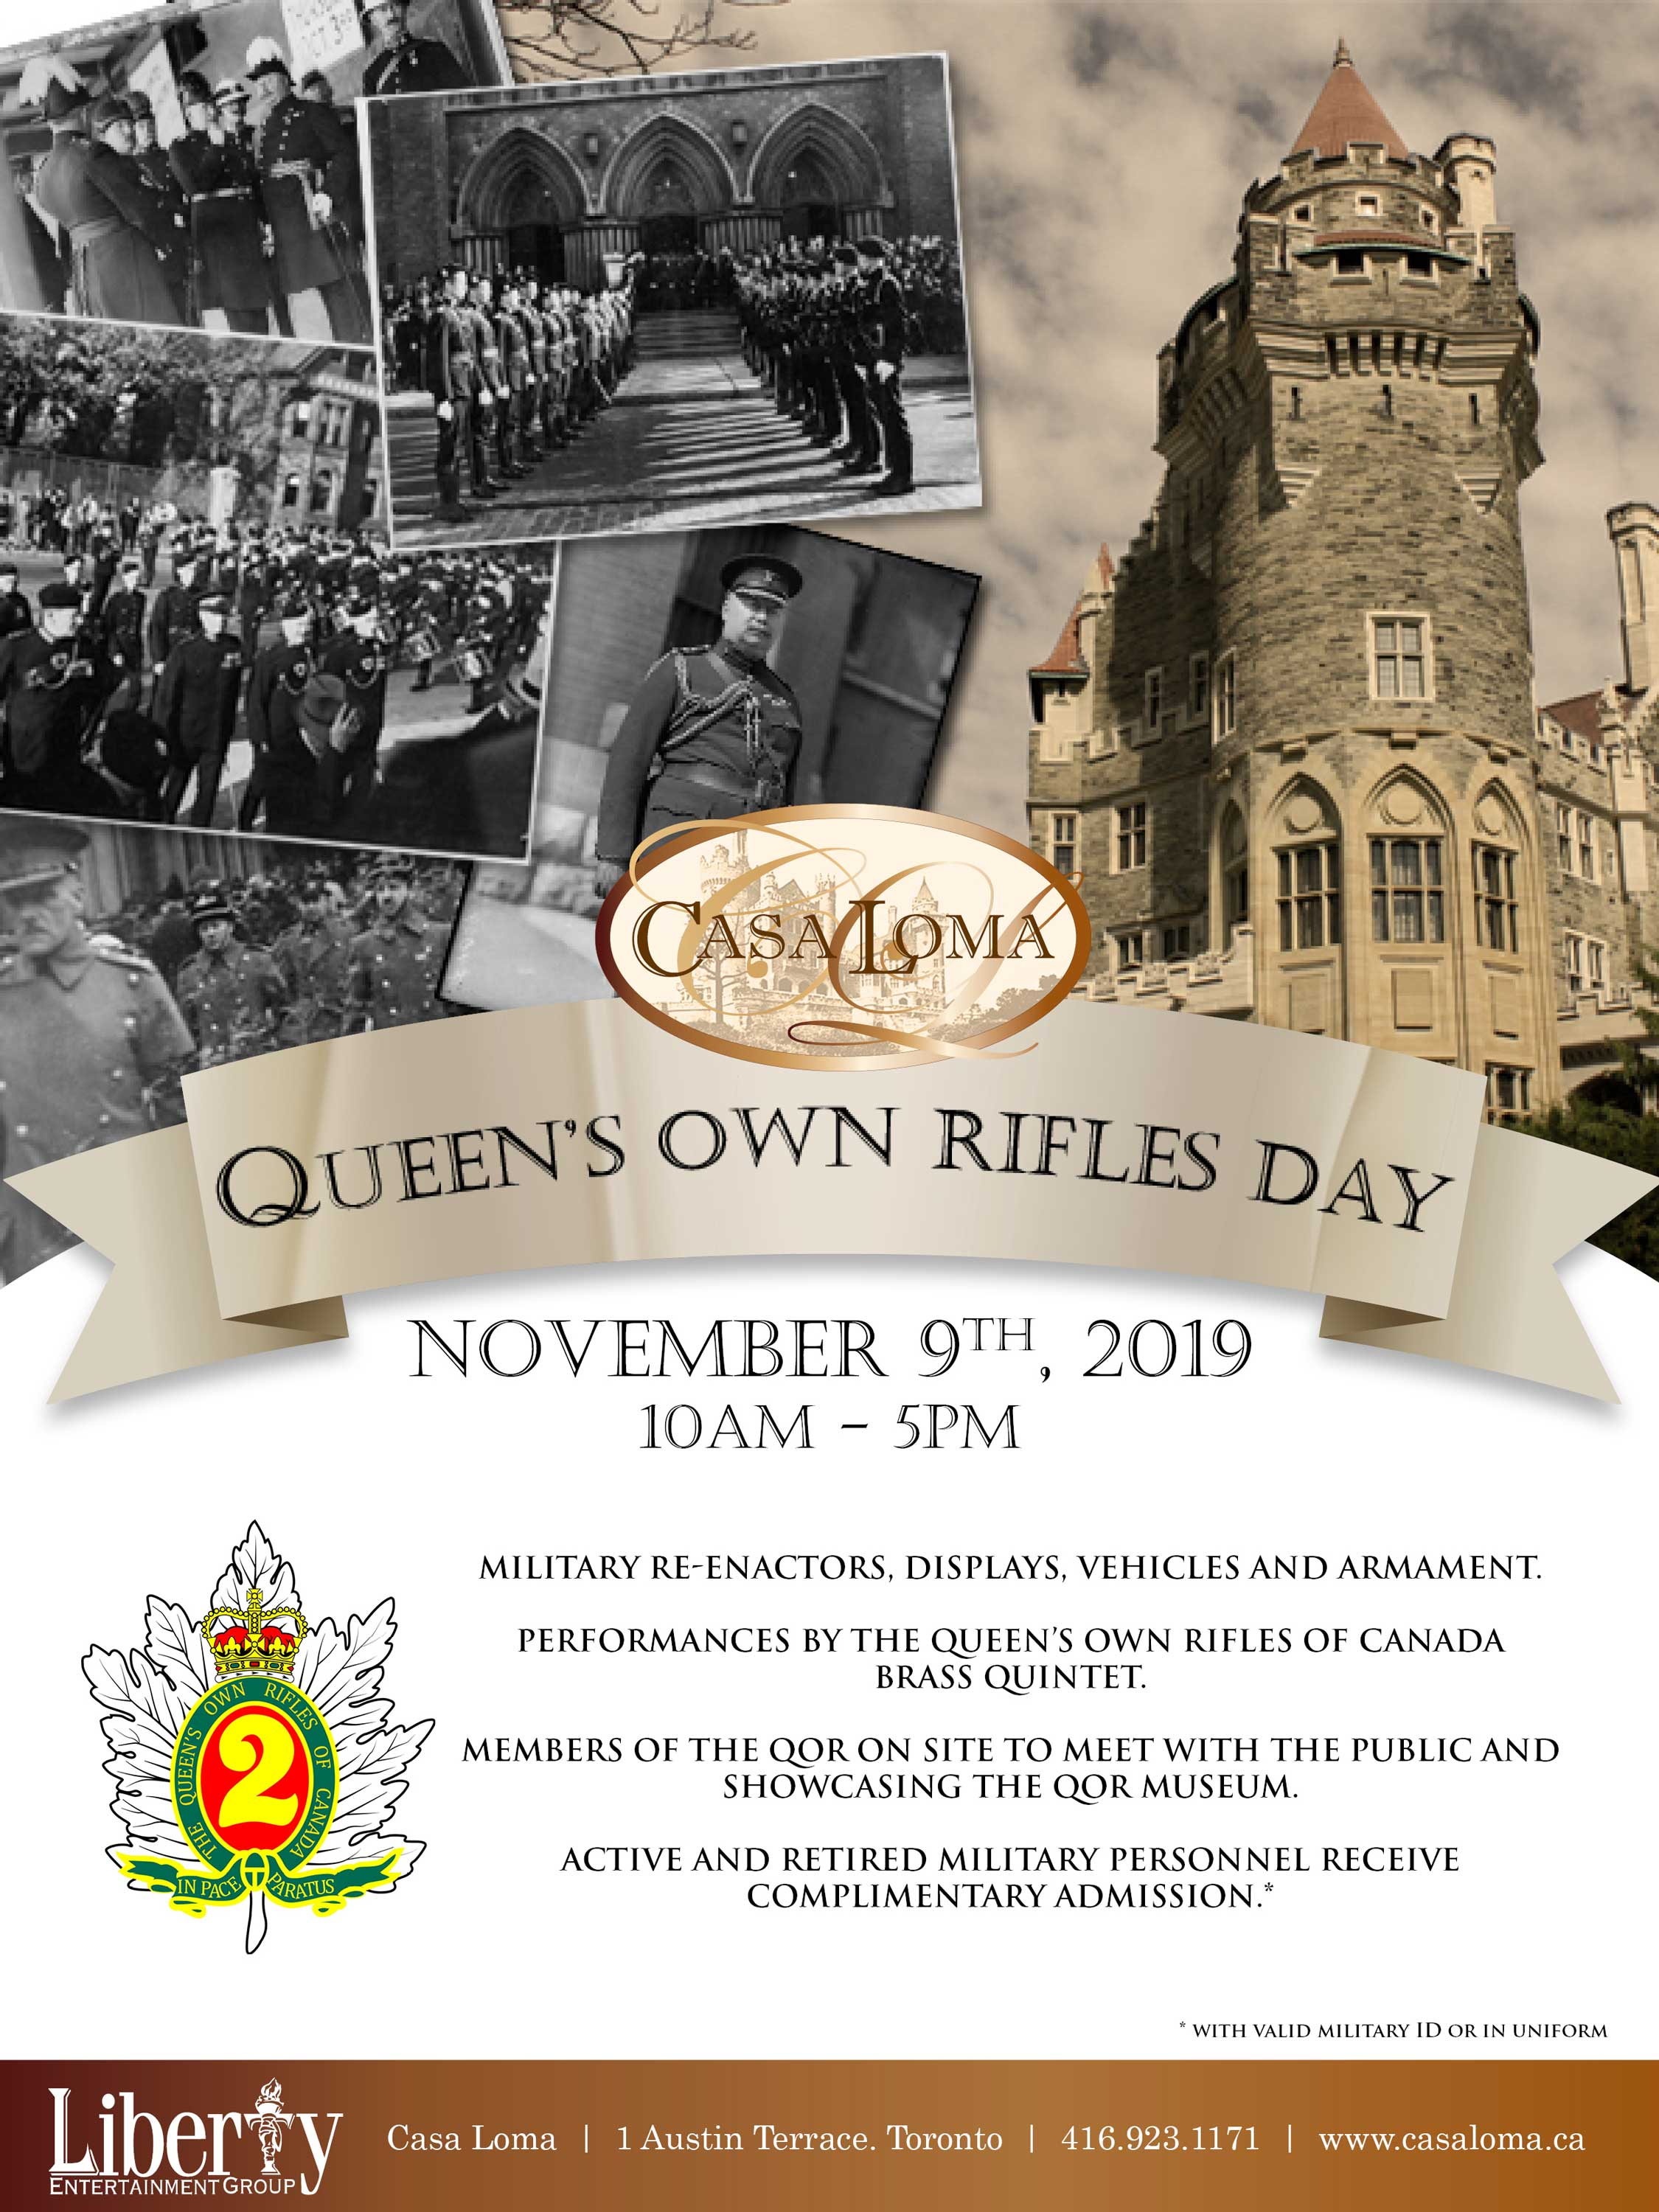 QUEEN'S OWN RIFLES DAY